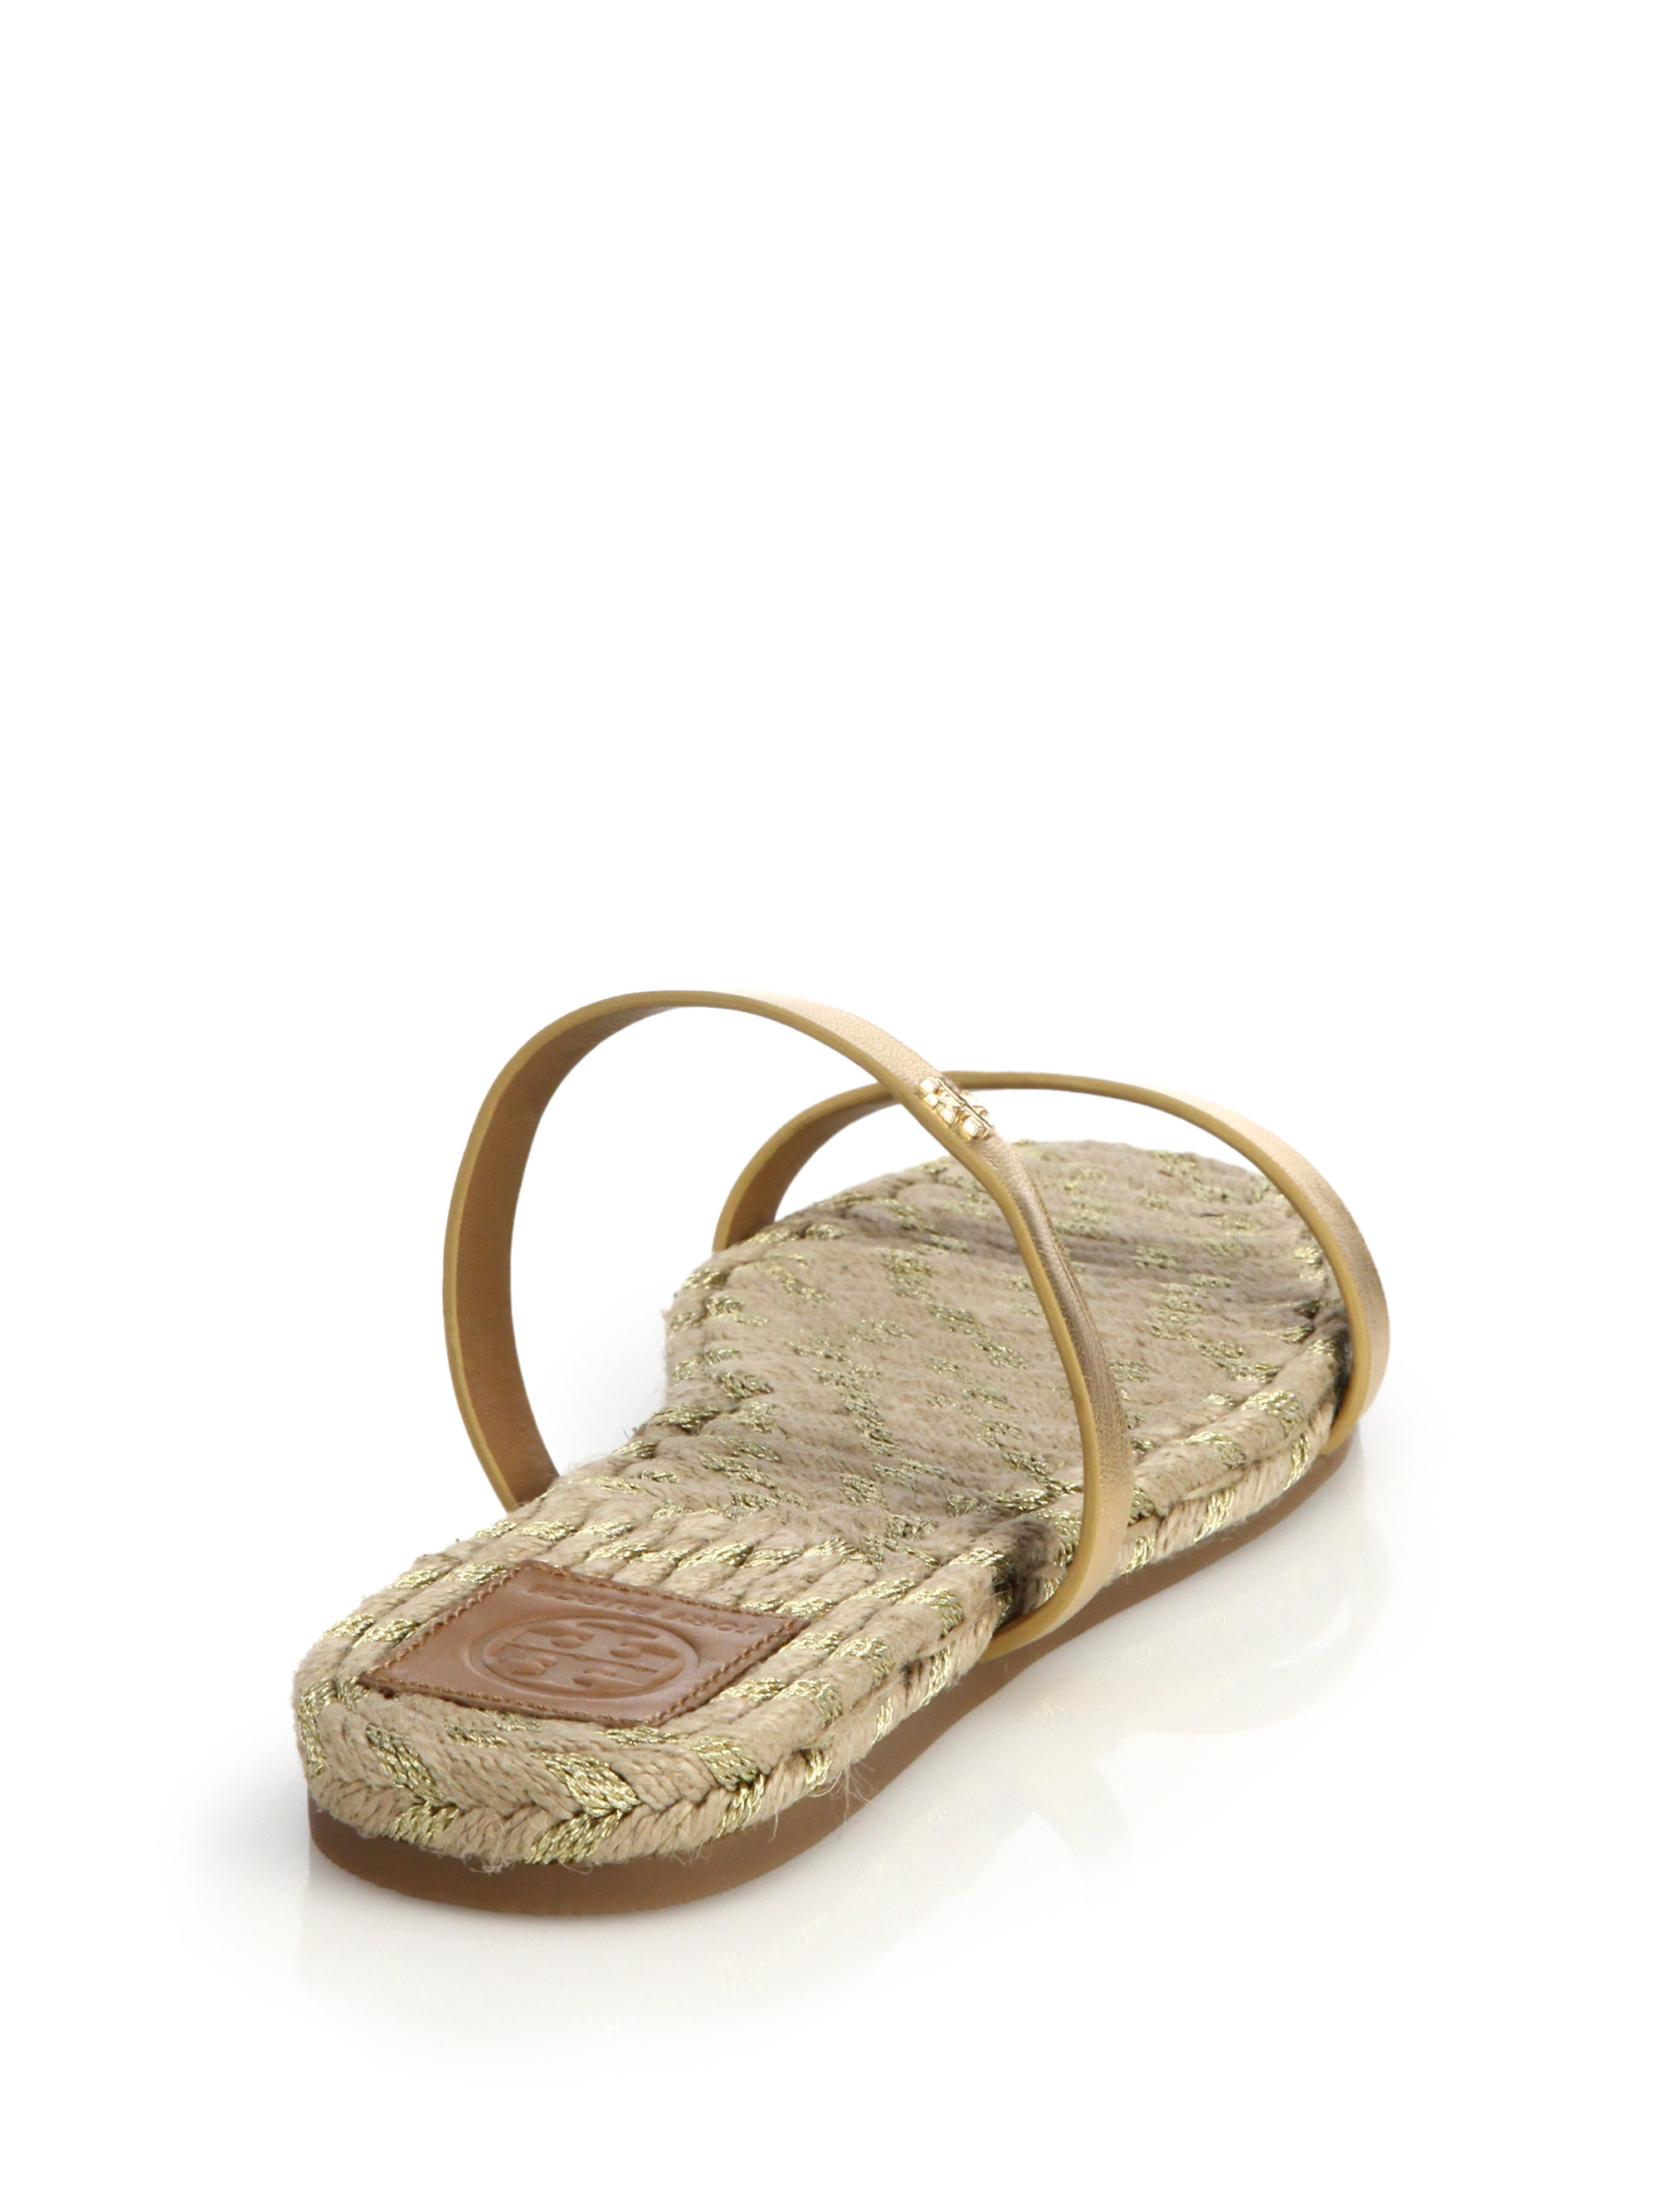 Cheap Wholesale Tory Burch Metallic leather slides Visit New 90qULMpTd